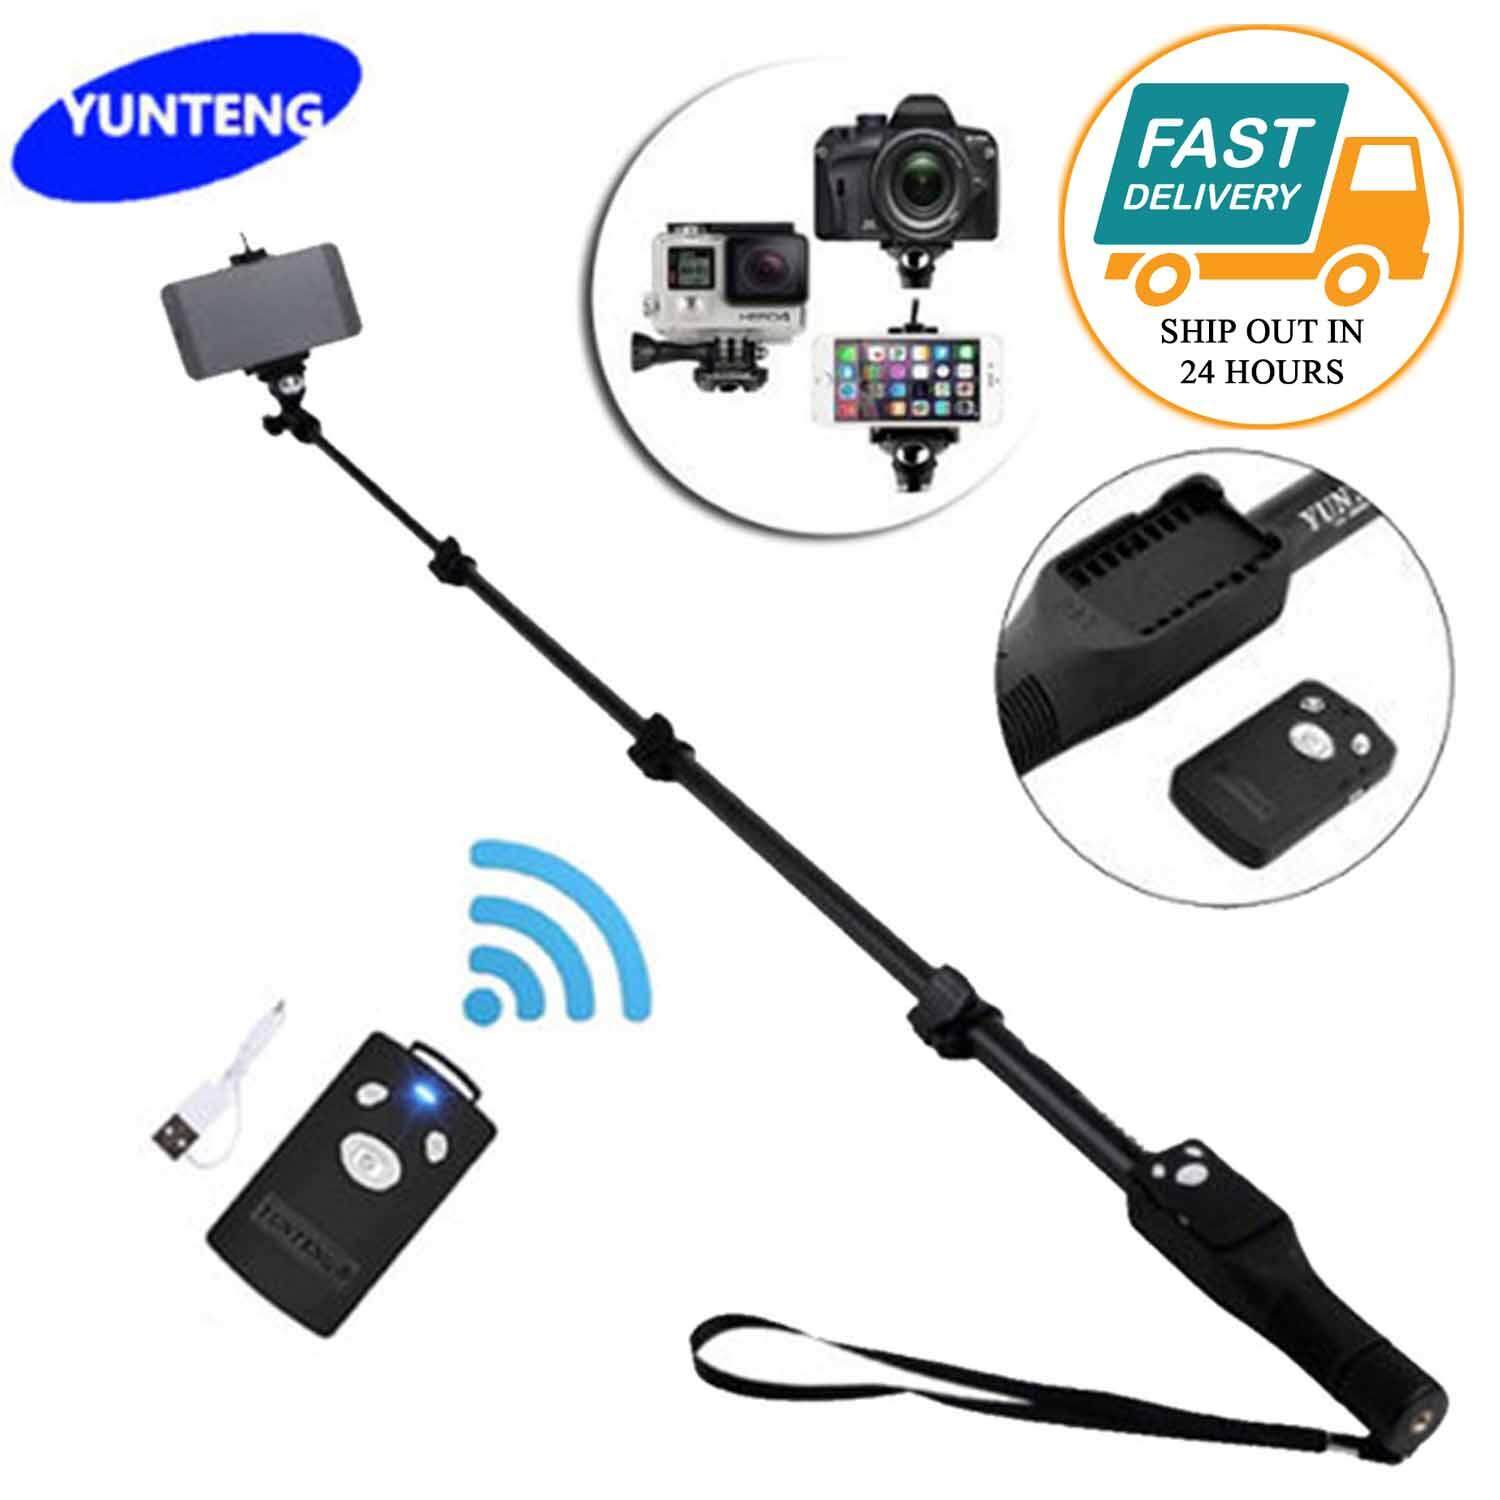 Popular Yunteng Monopods For The Best Prices In Malaysia